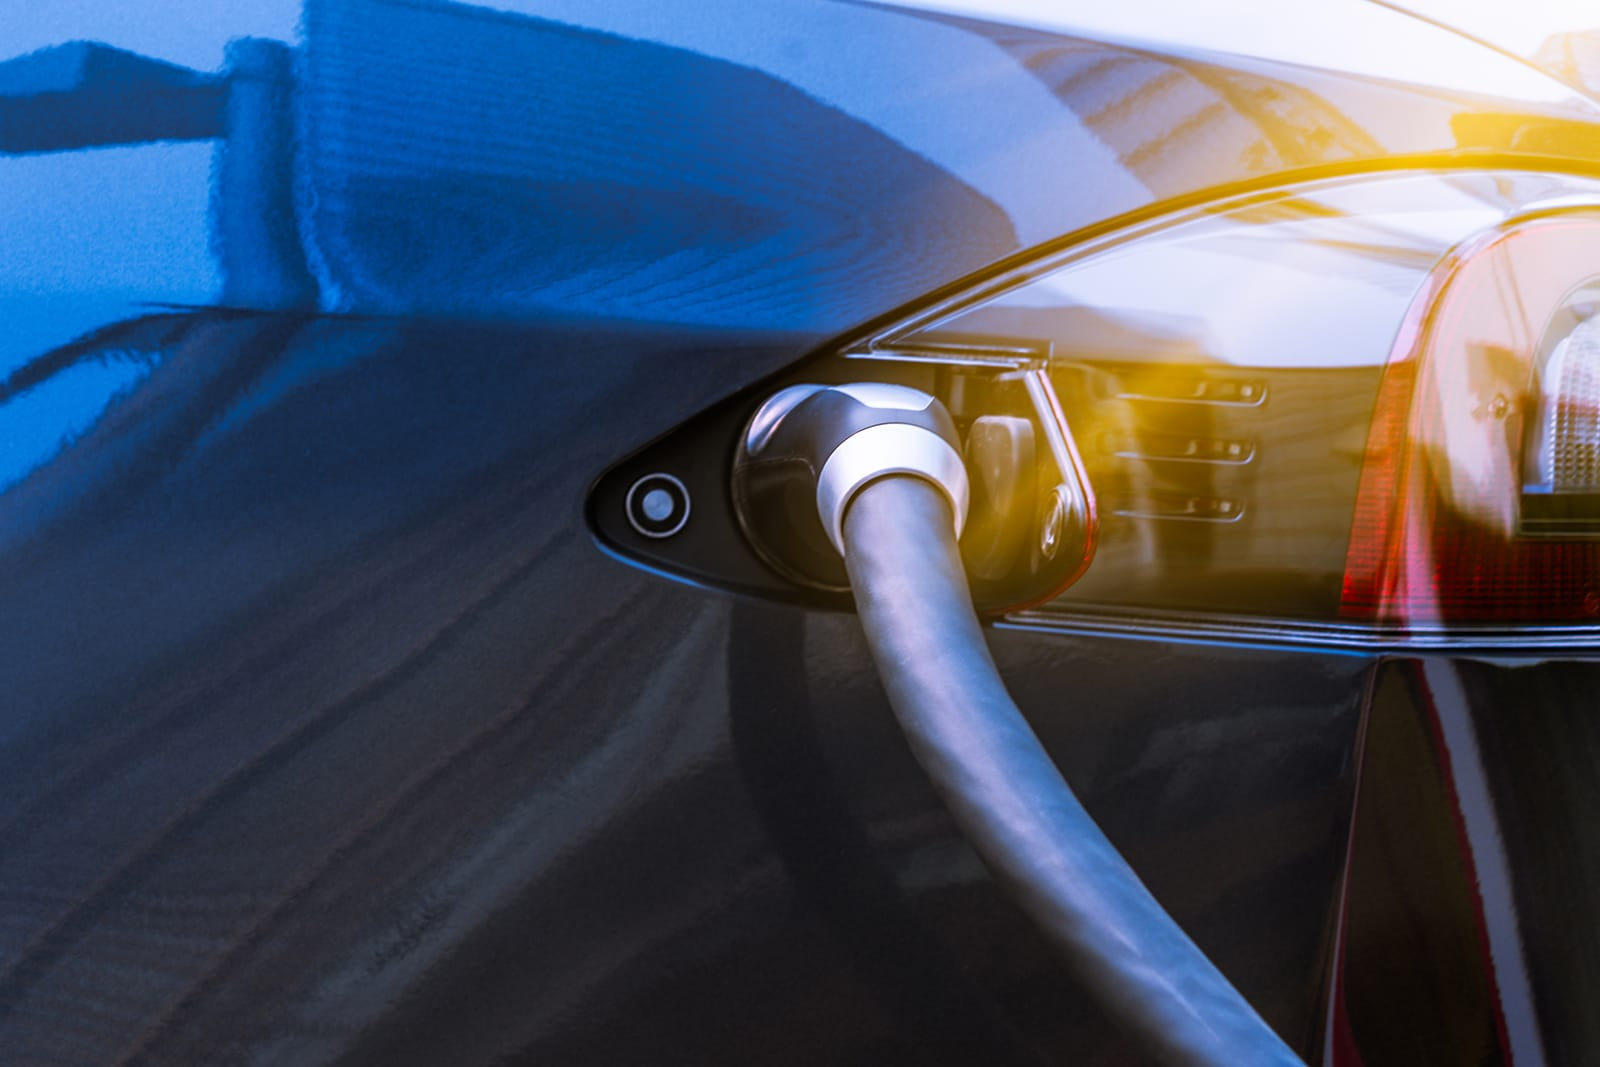 Electric car recharging batteries